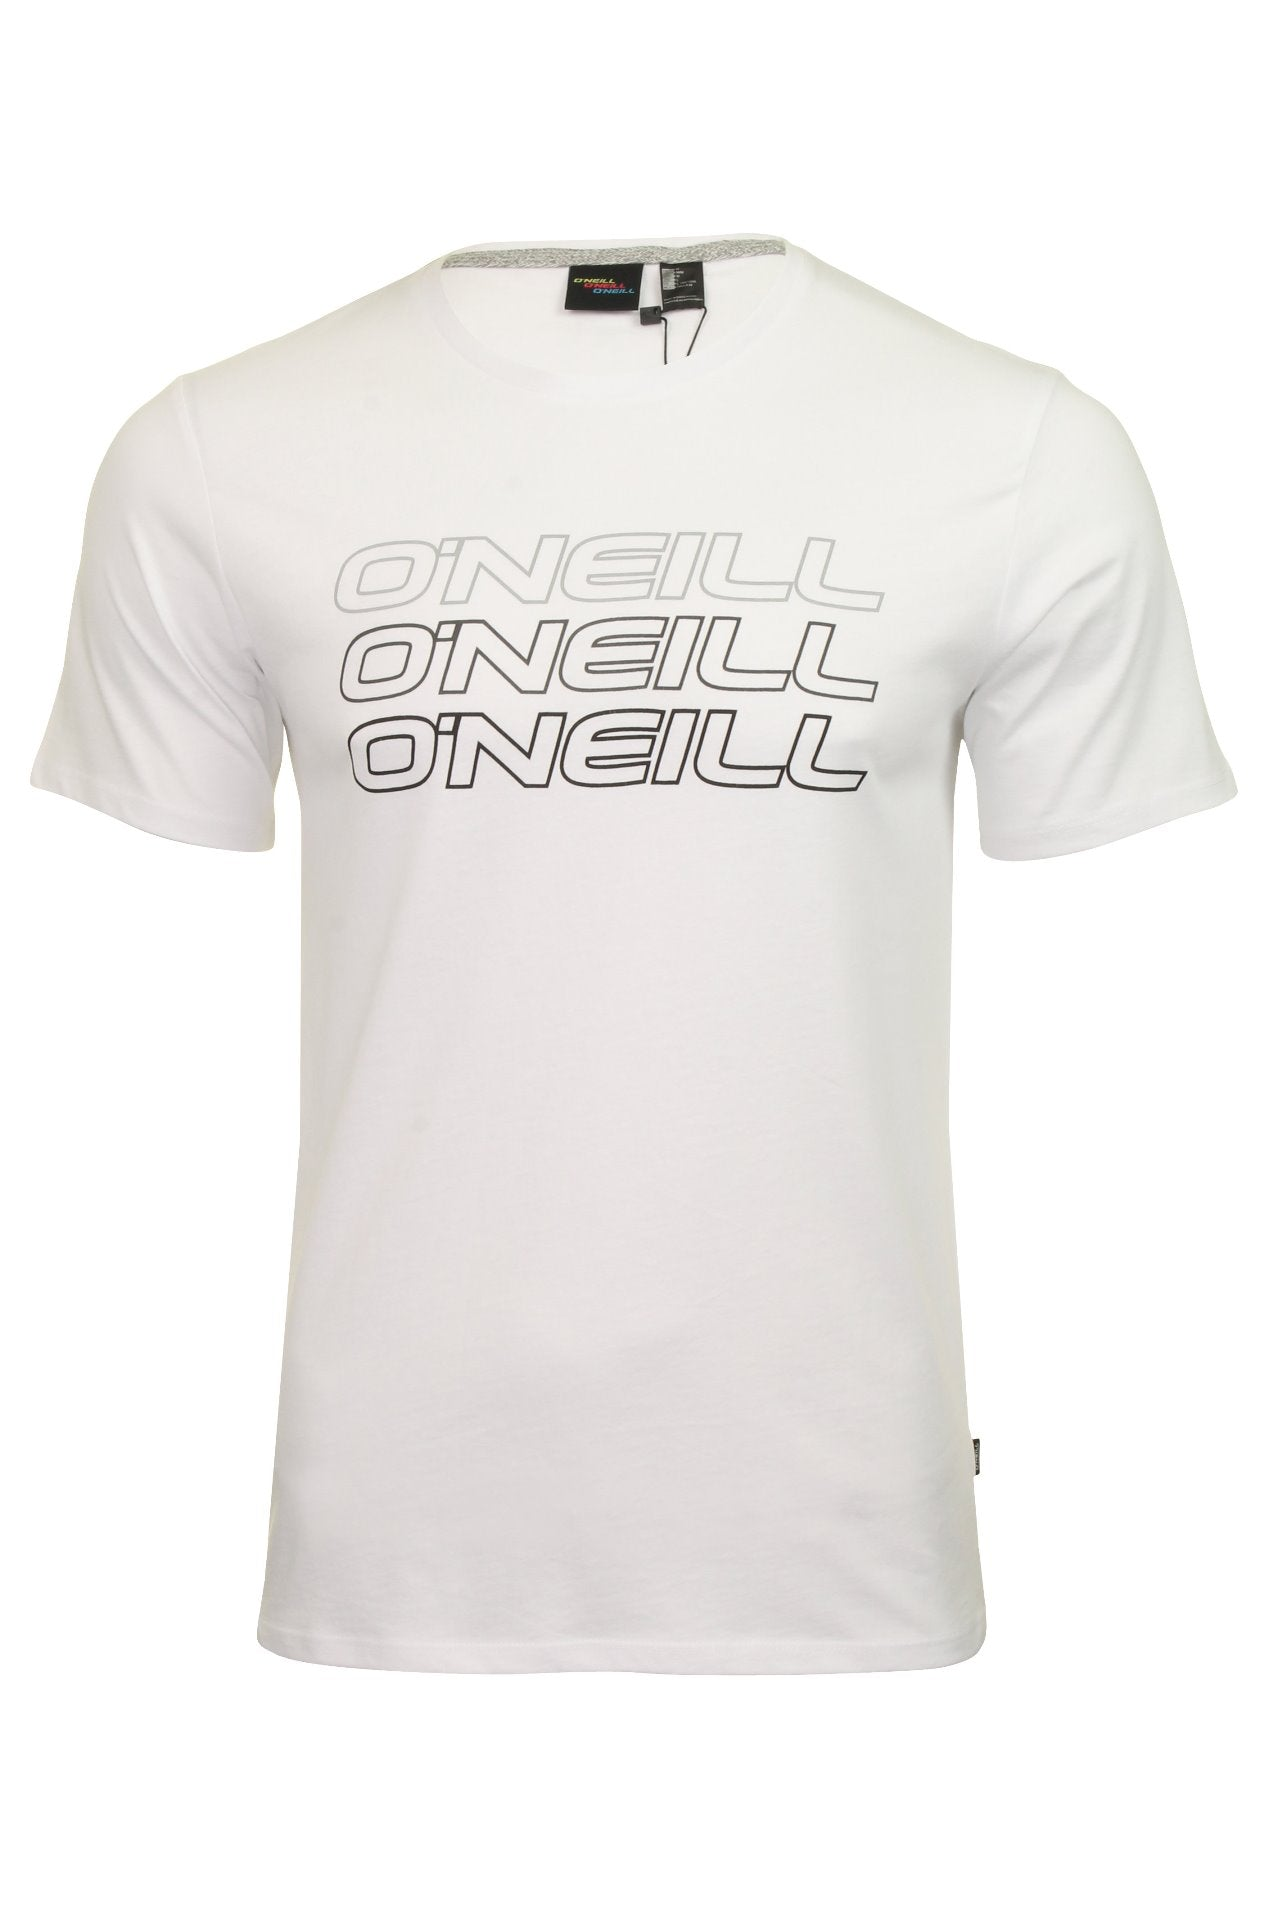 O'Neill Mens 'Triple Logo' Short Sleeved T-Shirt-Main Image